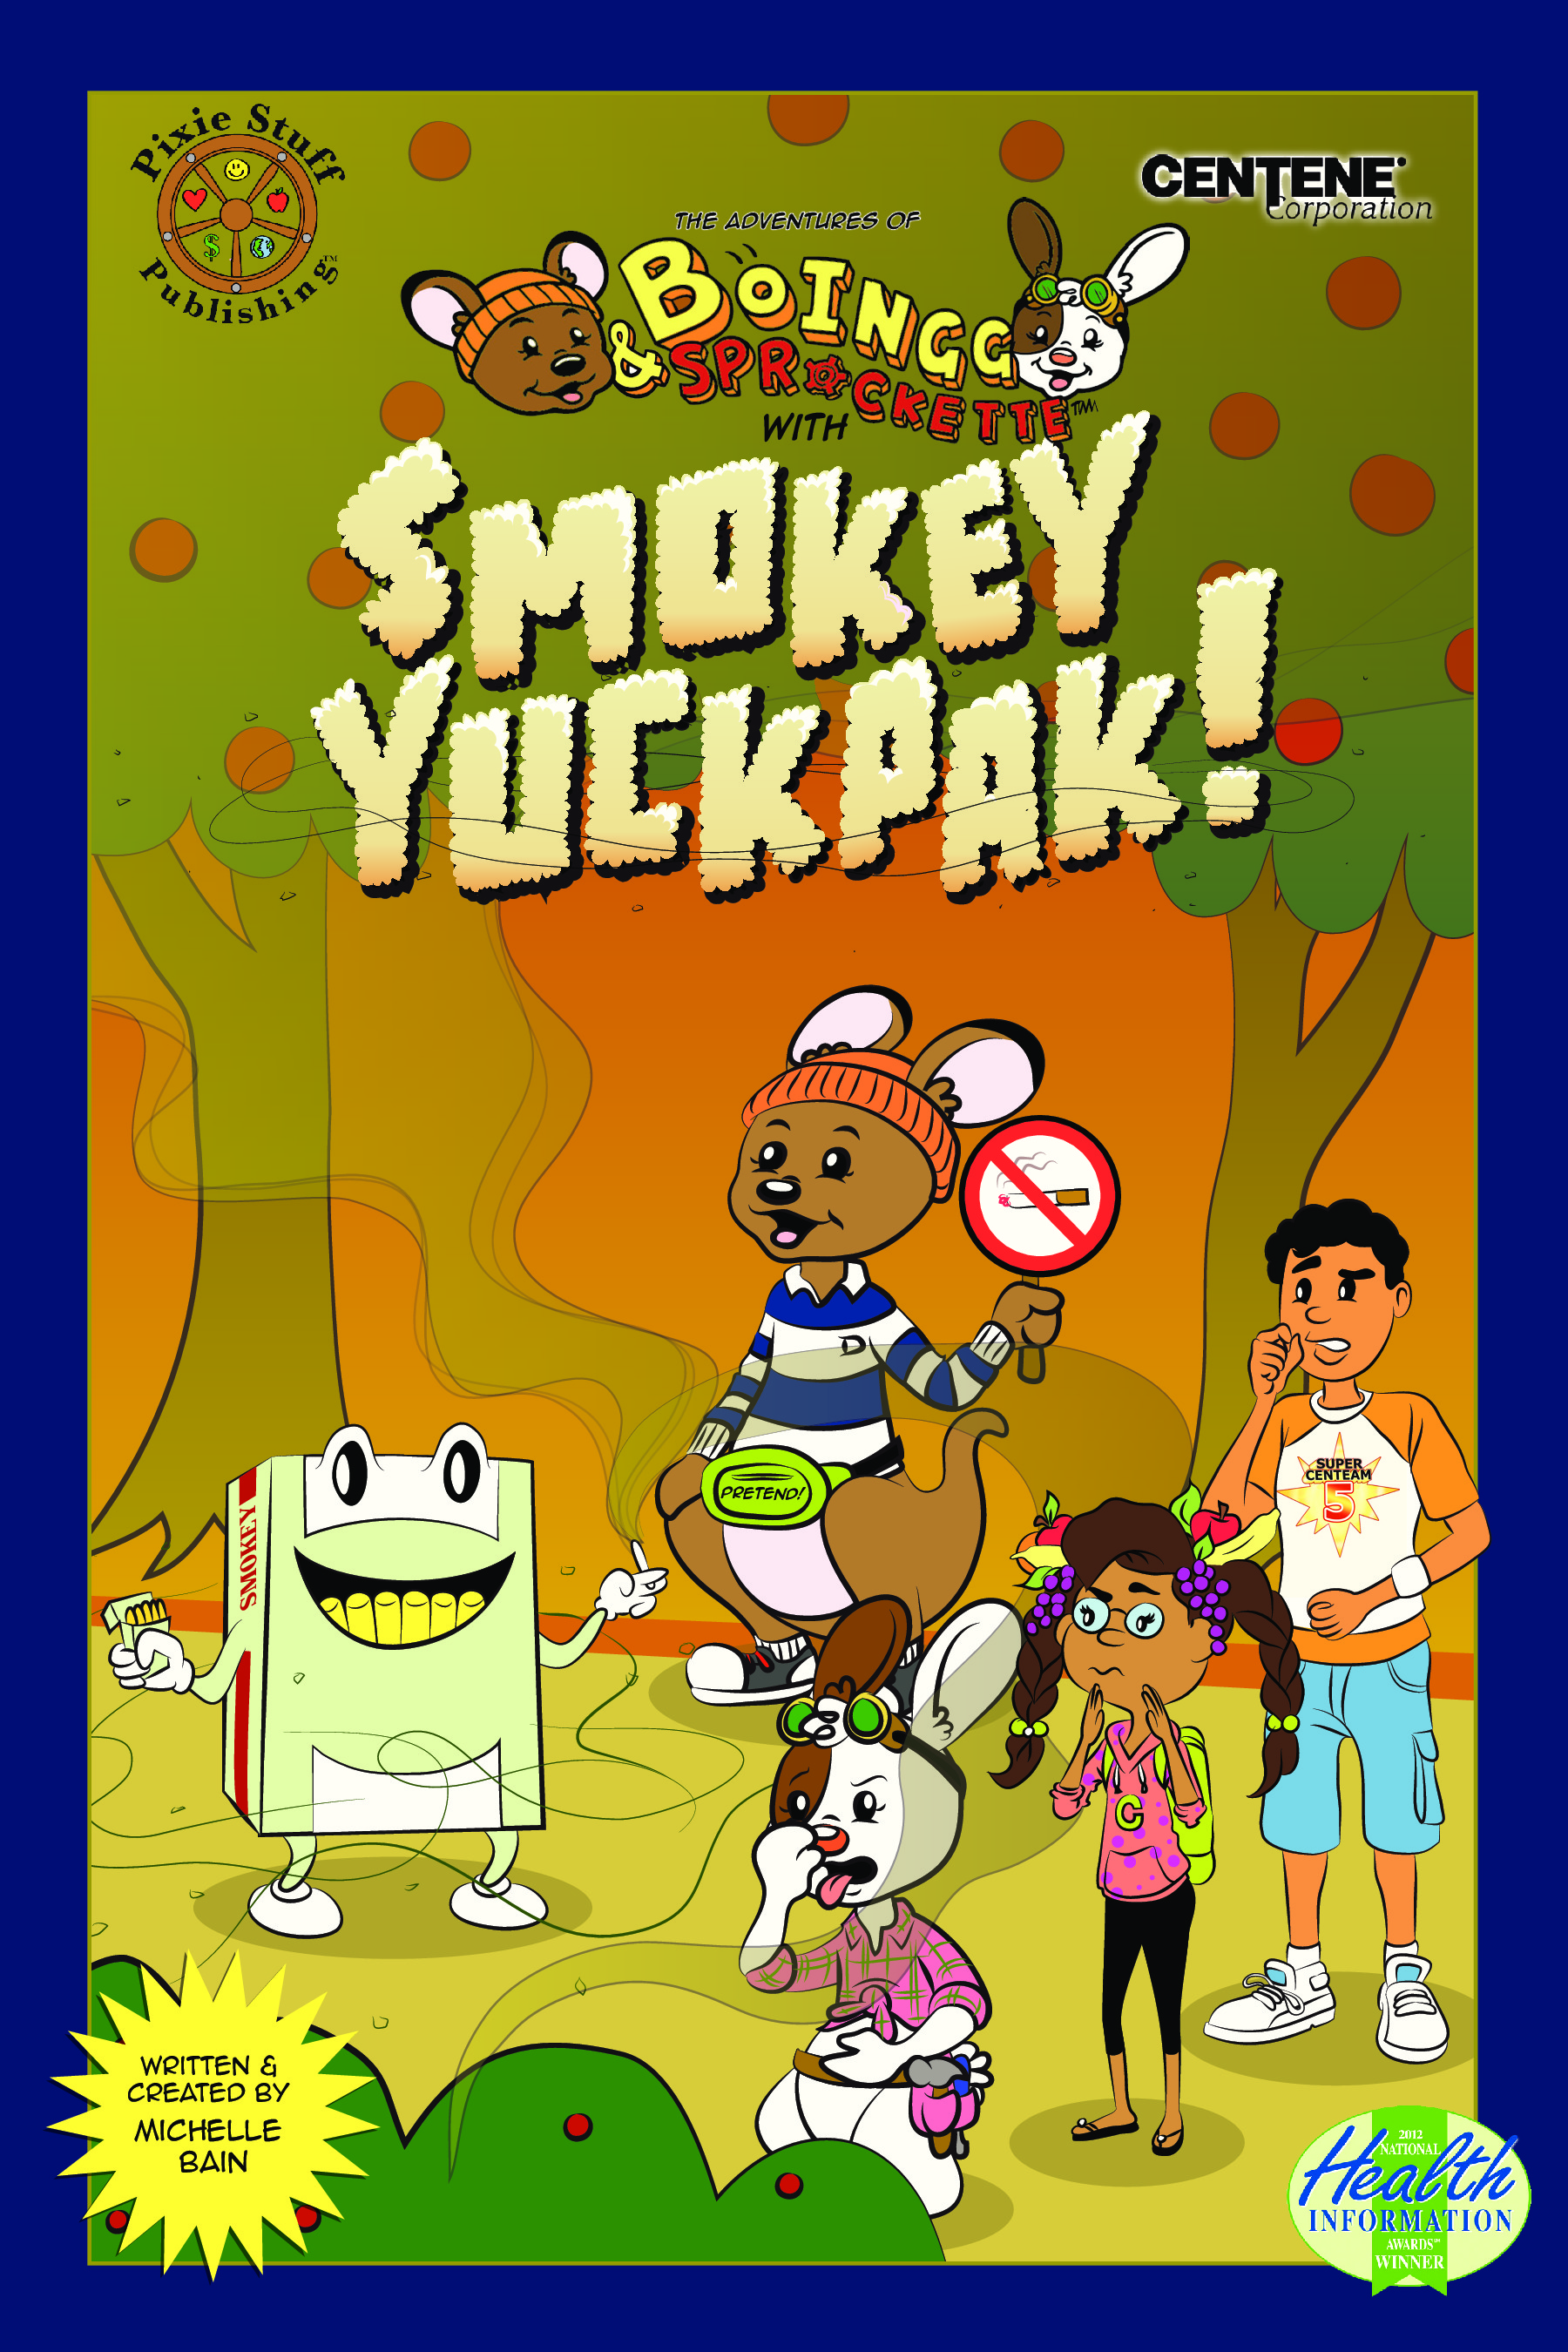 The Adventures of BoIngg & Sprockette: ADVENTURES WITH SMOKEY YUCKPAK!